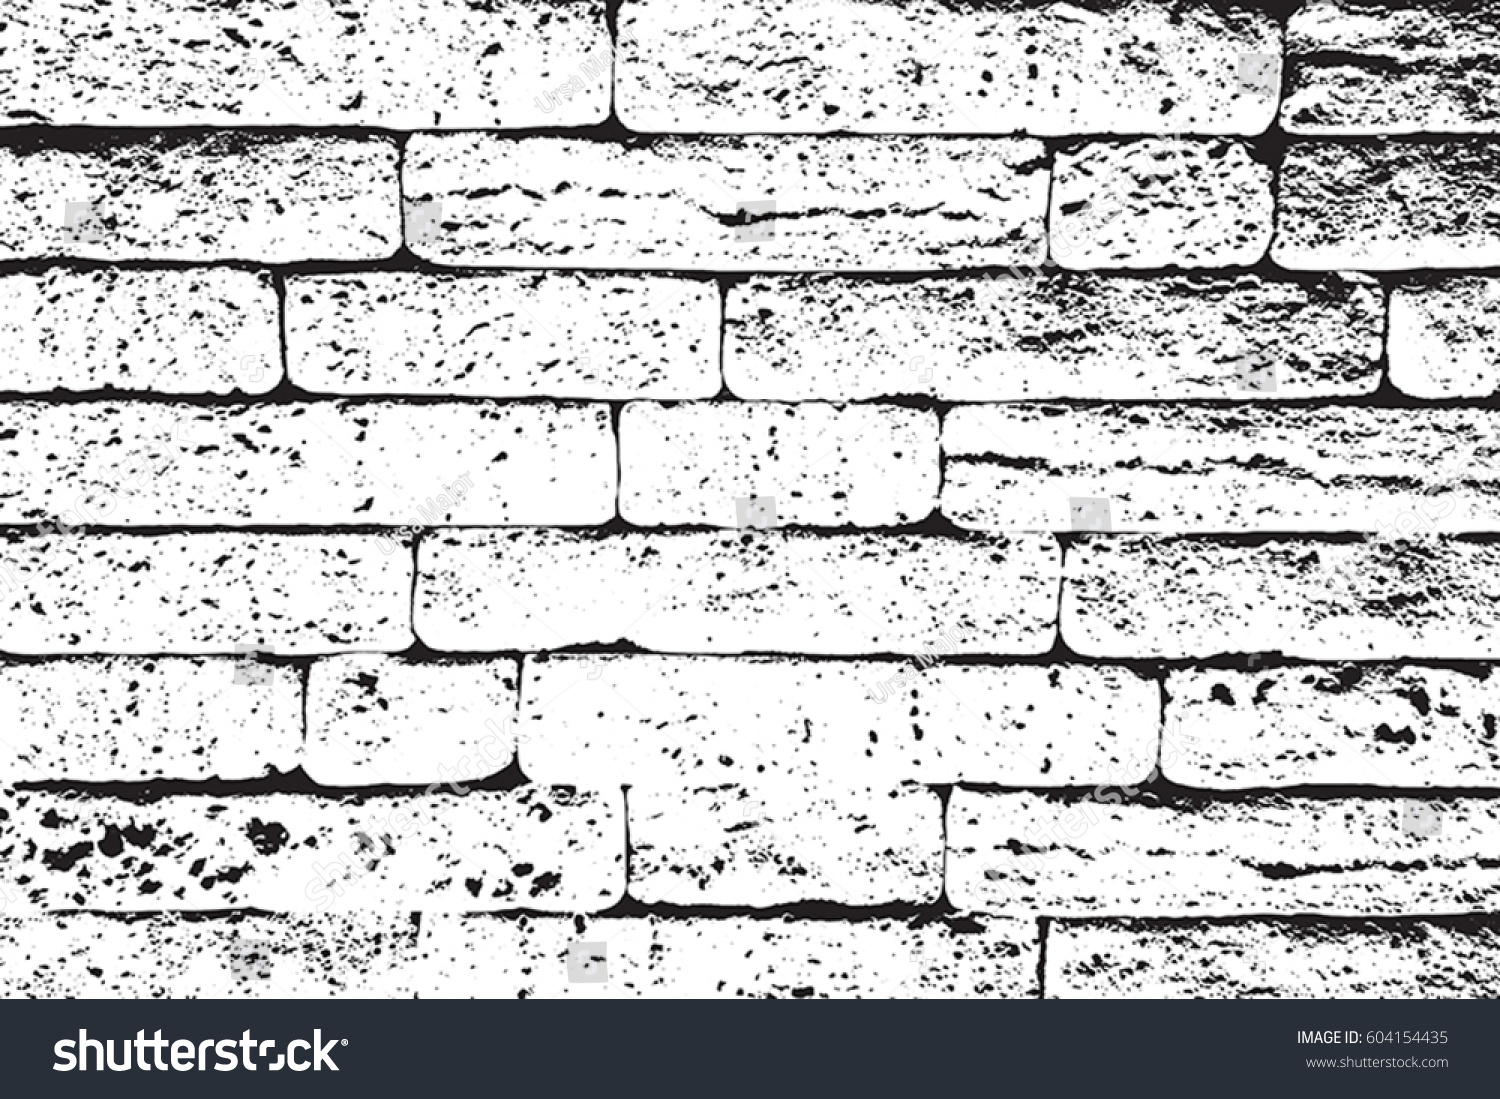 distress brick wall masonry overlay texture stock vector 604154435 shutterstock. Black Bedroom Furniture Sets. Home Design Ideas